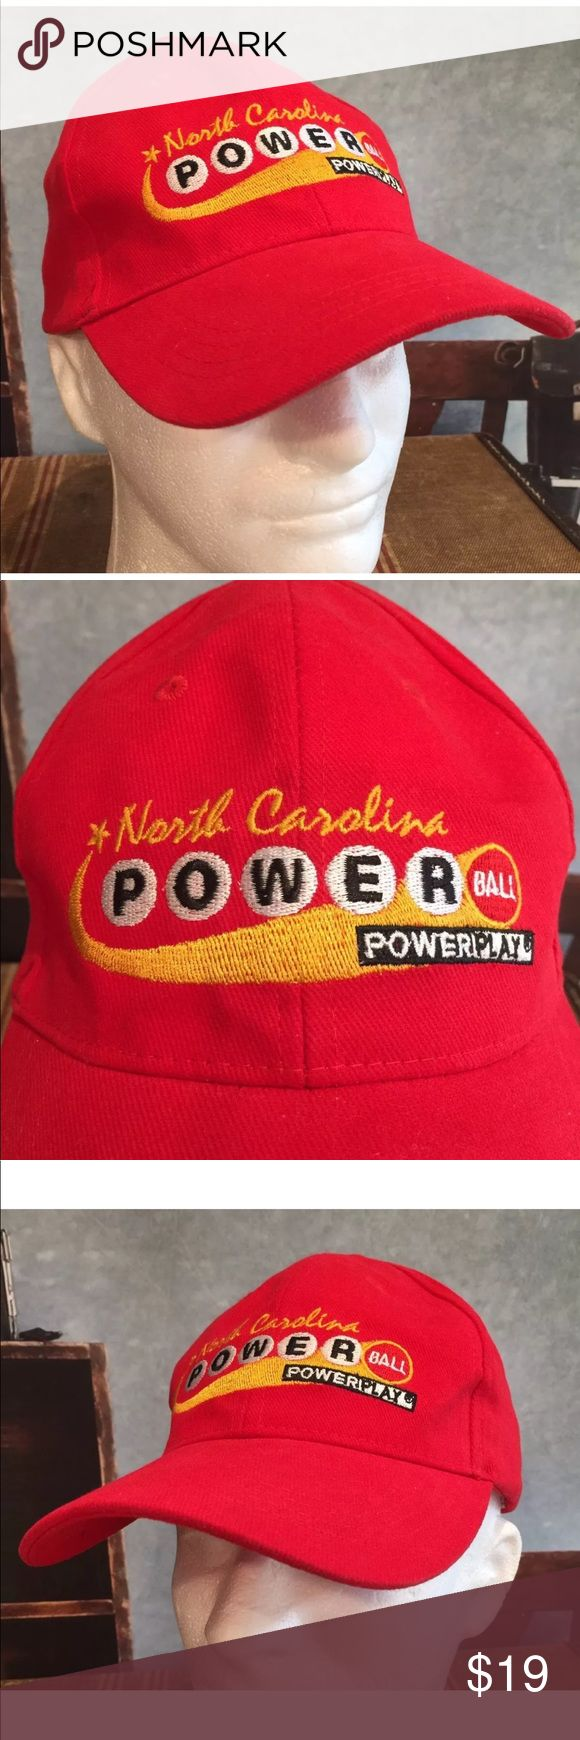 North Carolina Powerball Lottery Red Hat This listing is for a North Carolina Powerball Lottery Adjustable Red Hat Cap. It has embroidered NC Powerball logo on front.  Comes from a smoke free pet free environment. Will be shipped in a box. Unbranded Accessories Hats